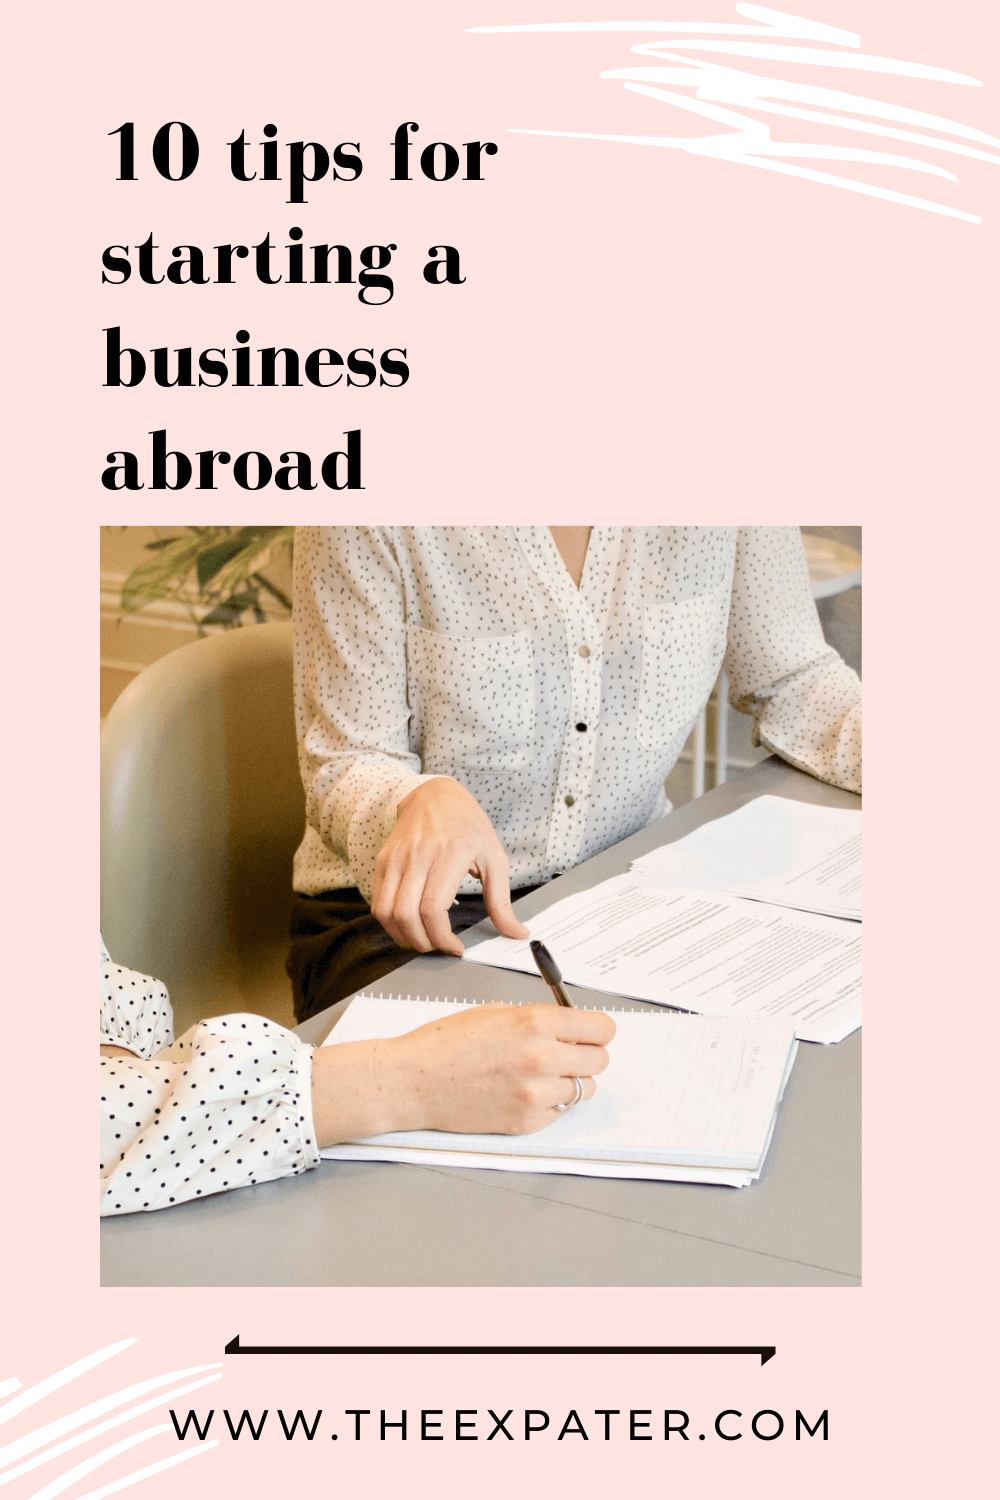 tips for starting a business abroad